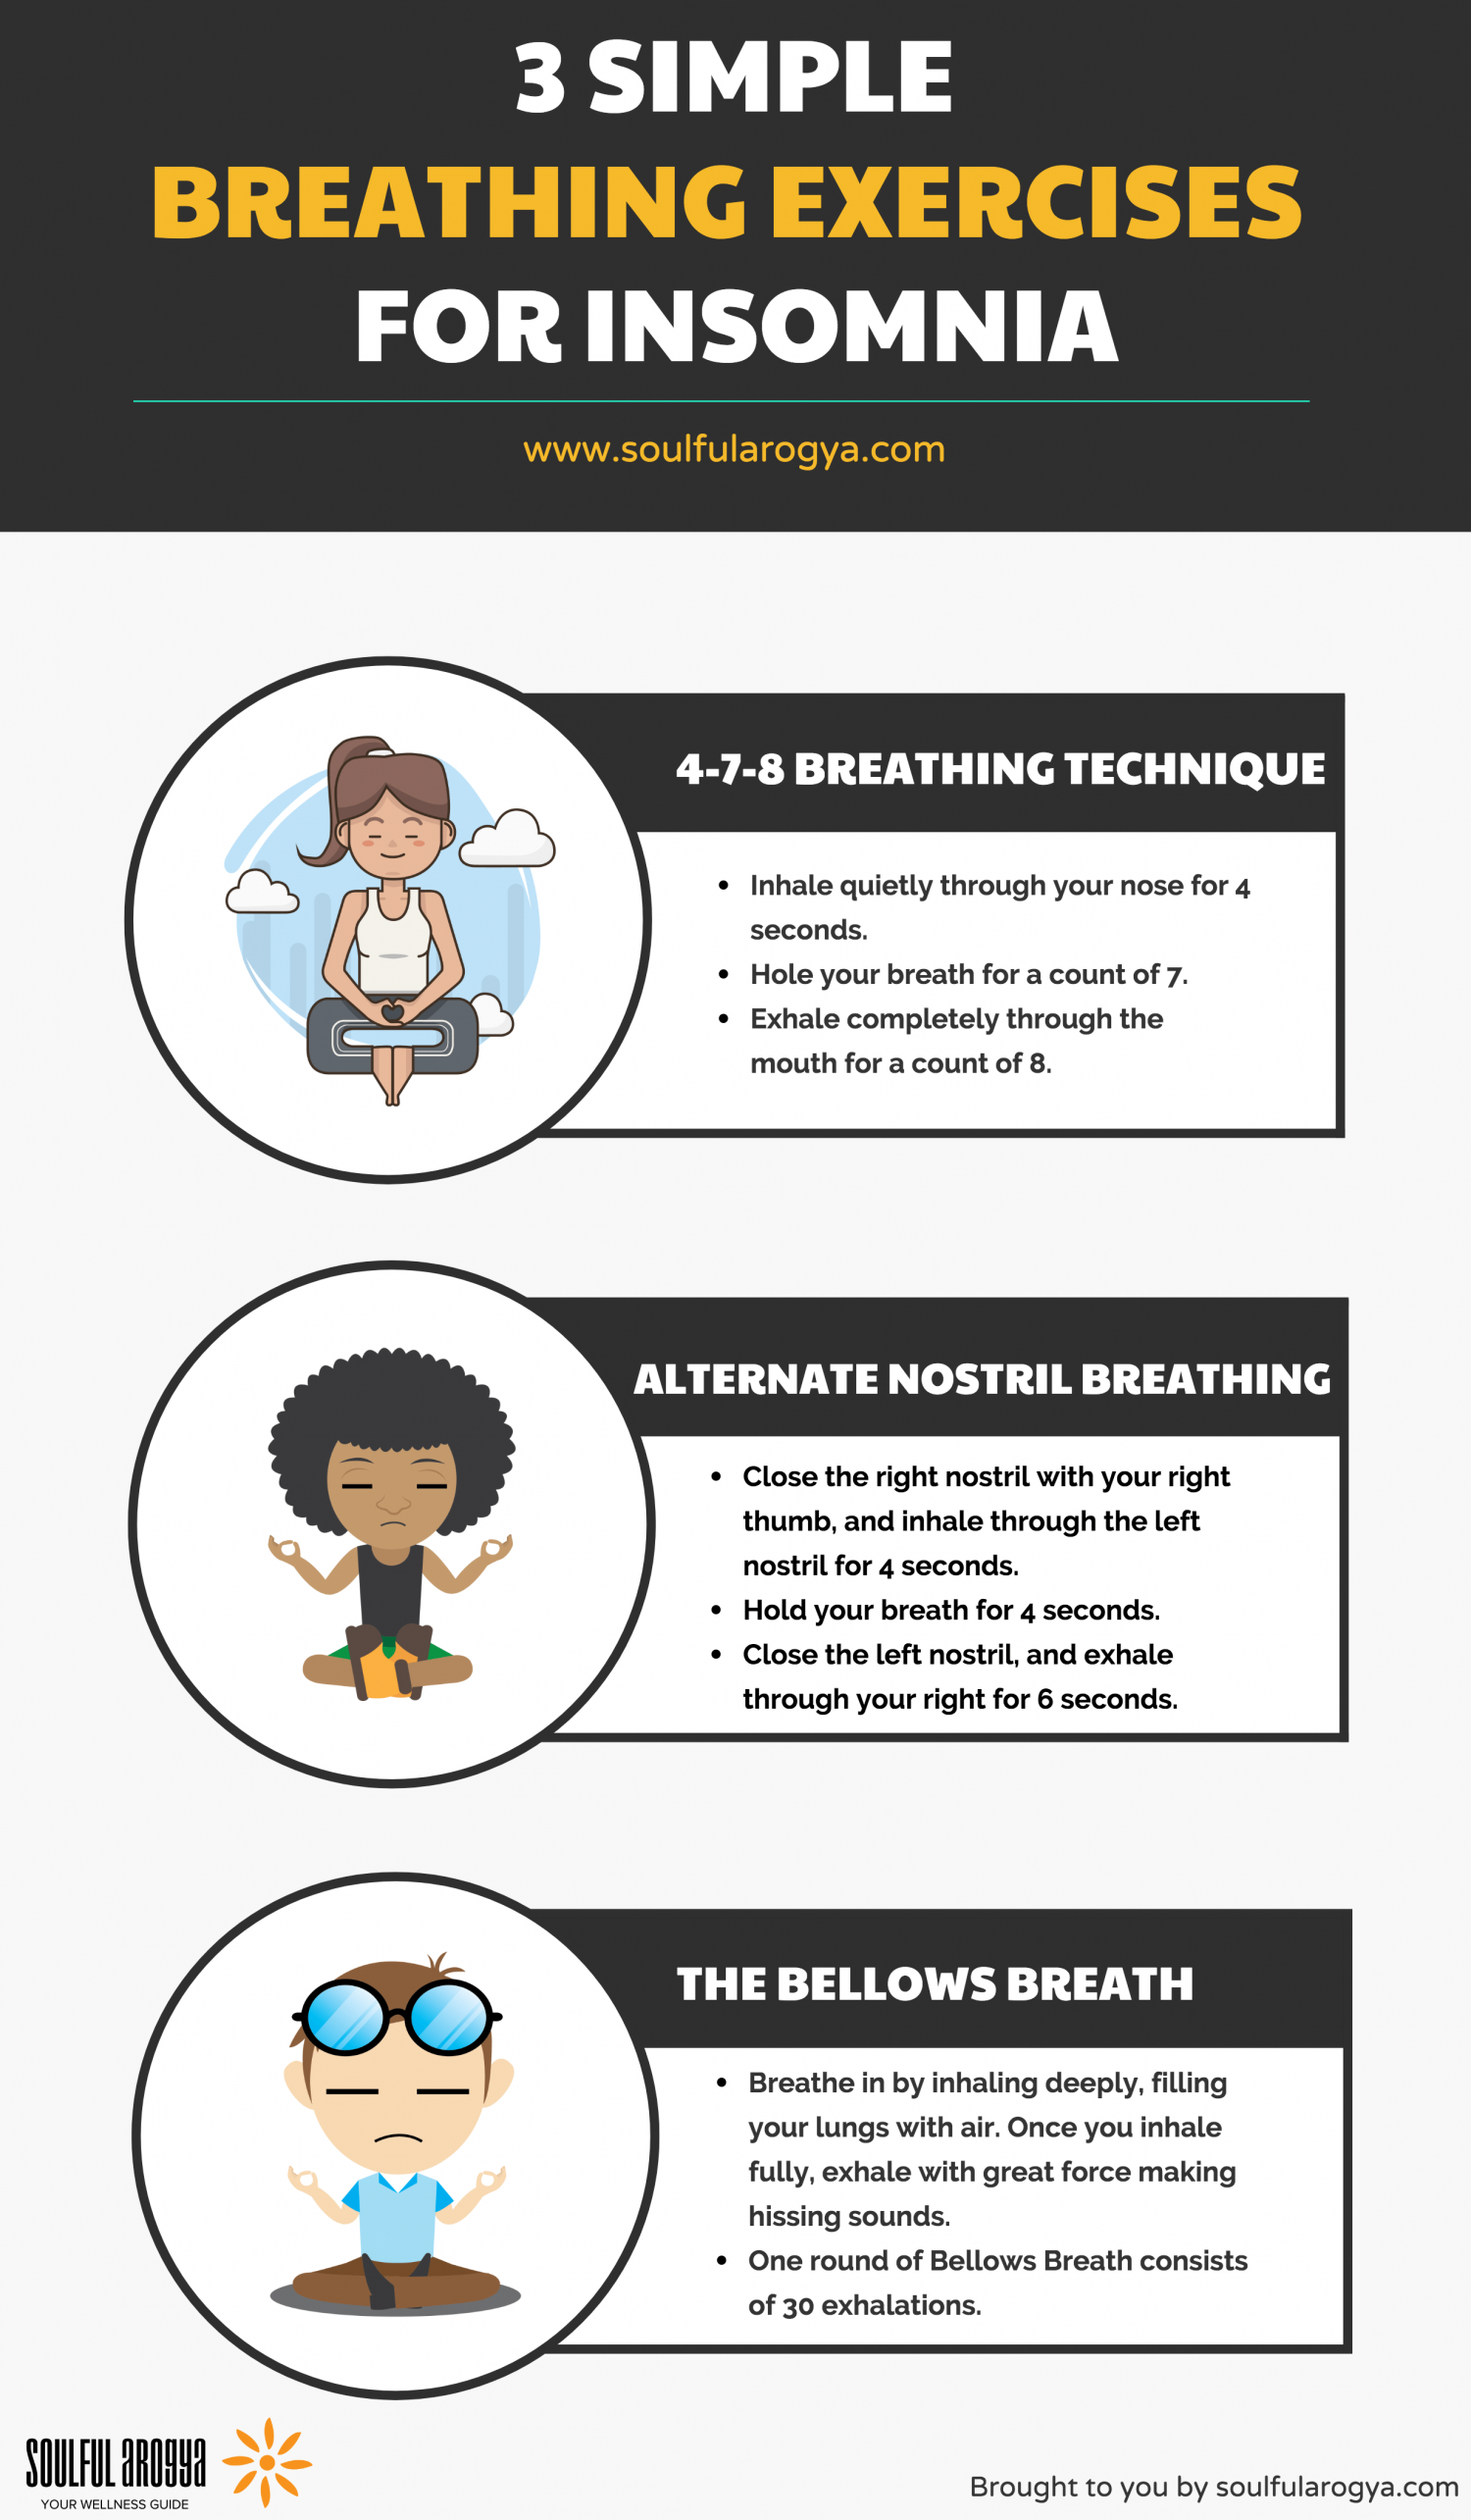 3 Simple Breathing Exercises for Insomnia Infographic